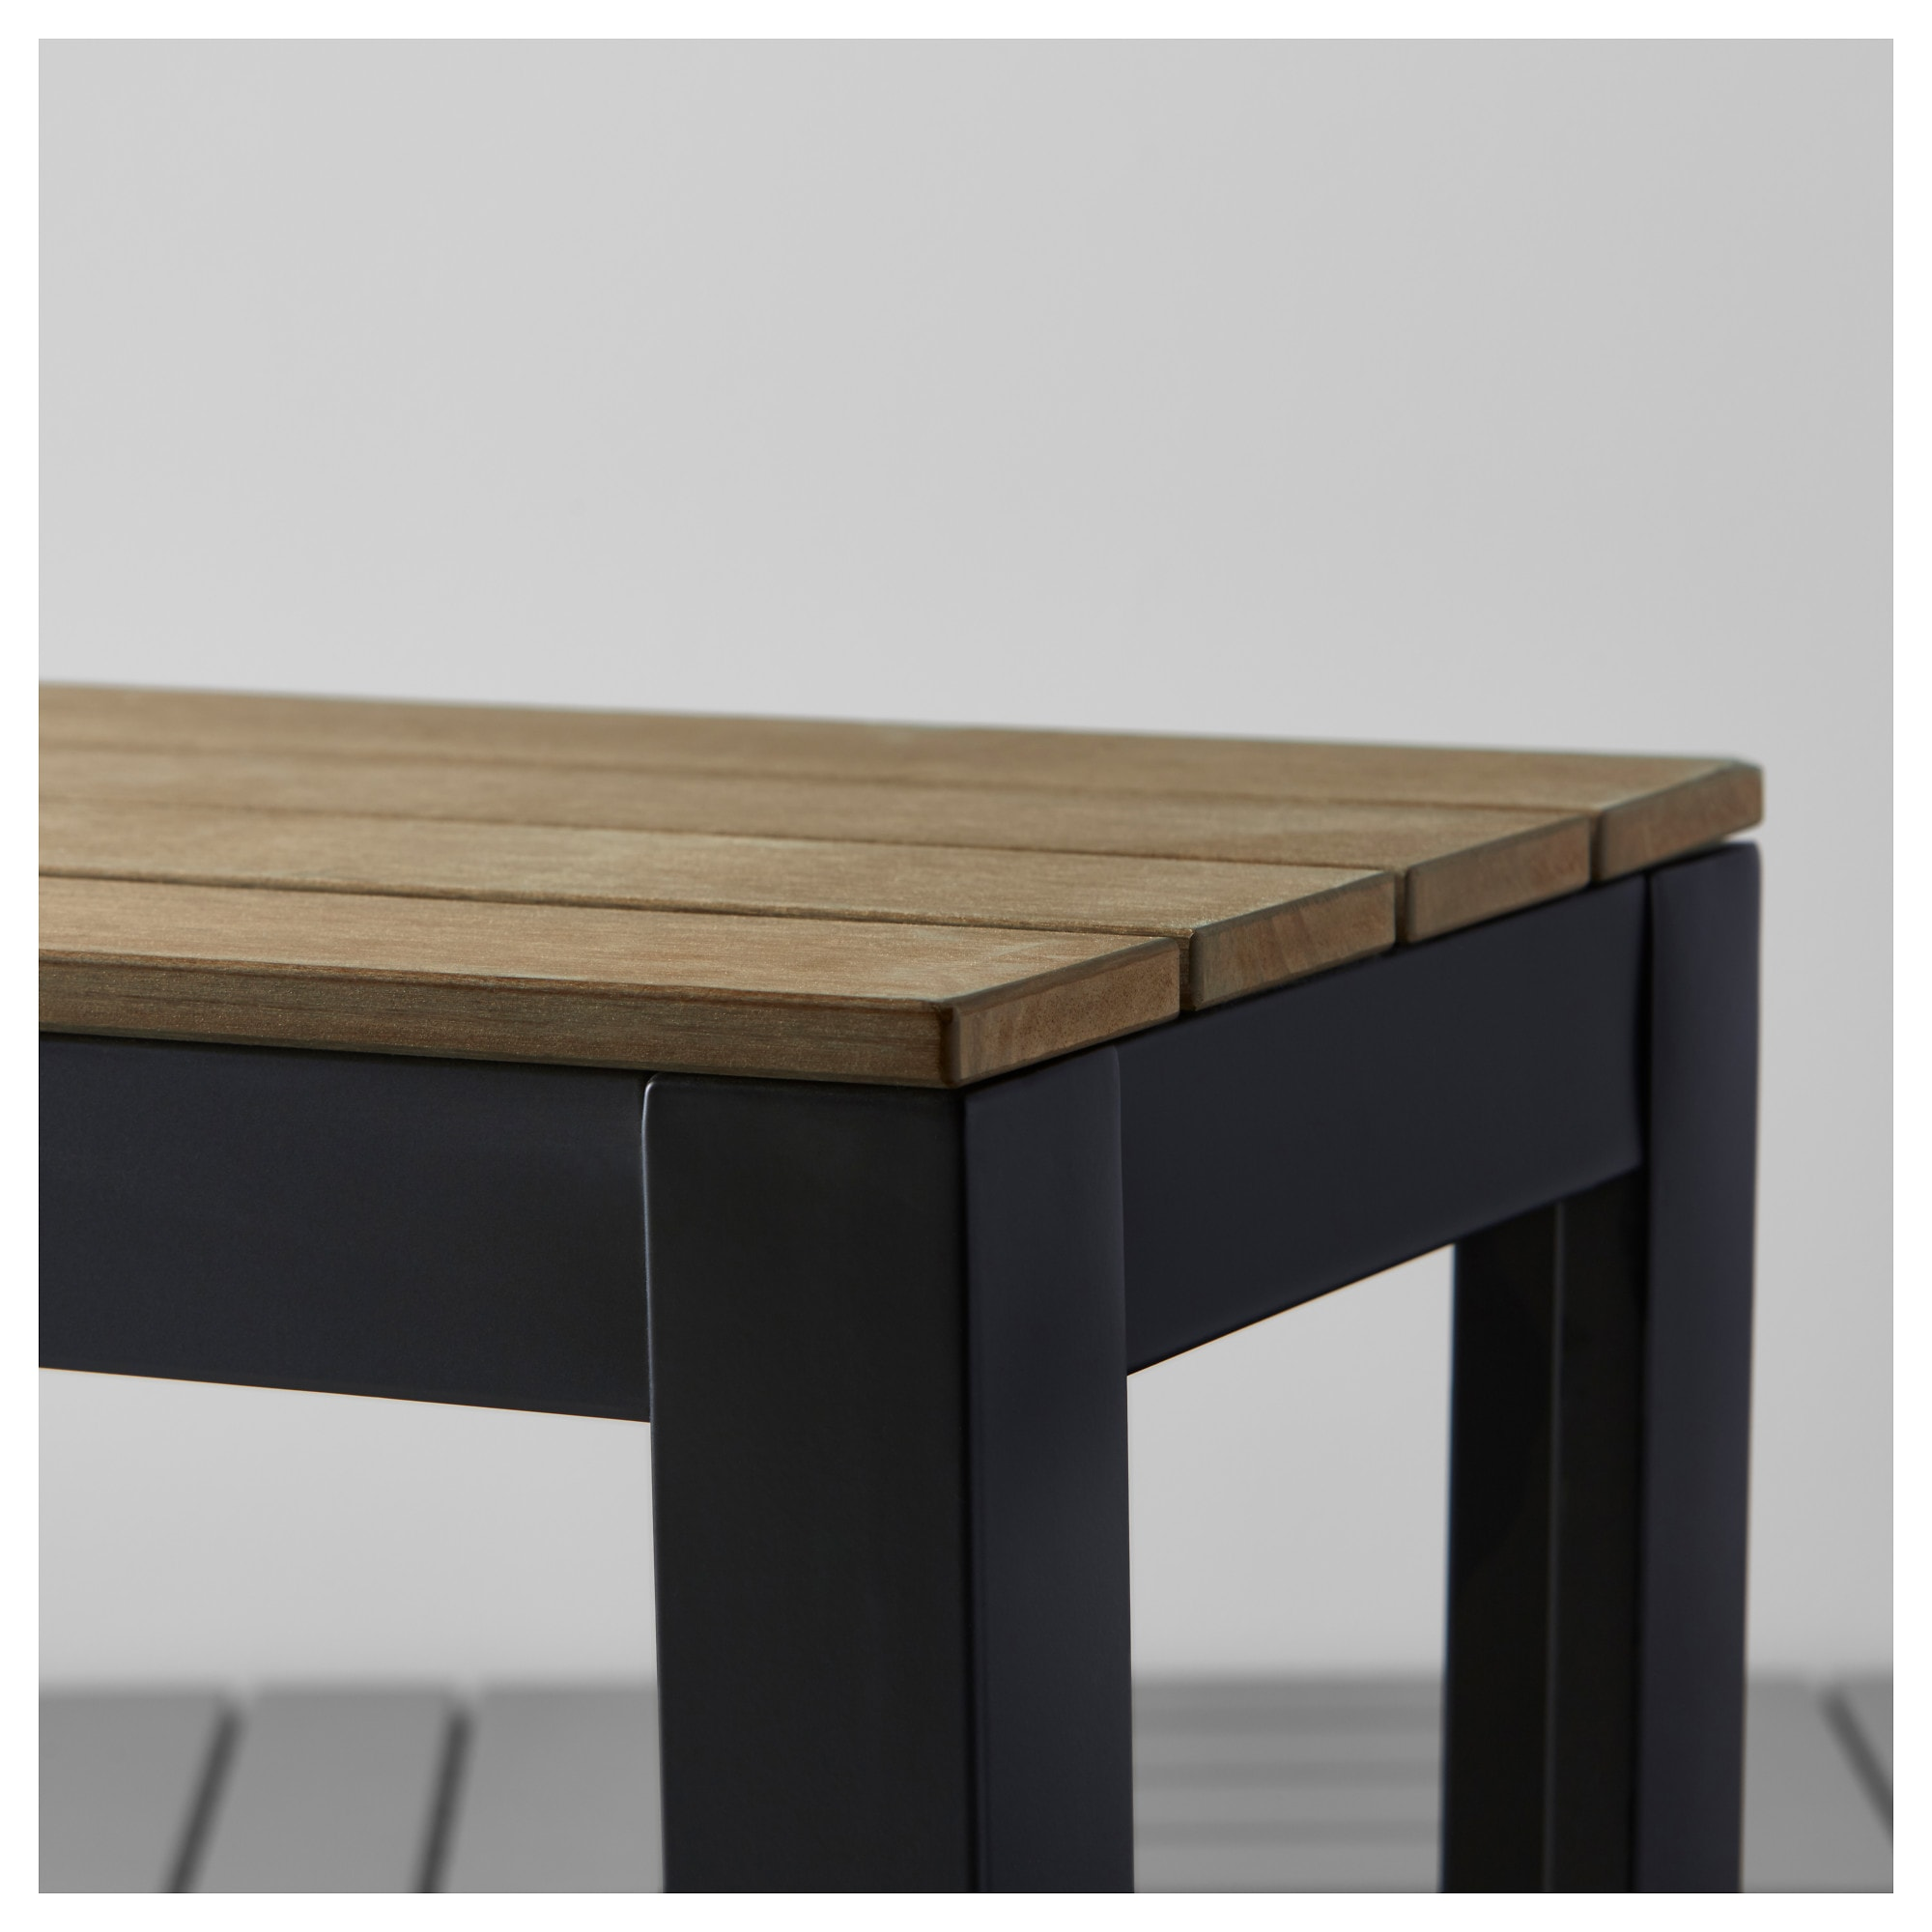 Charmant IKEA FALSTER Table+2 Benches, Outdoor